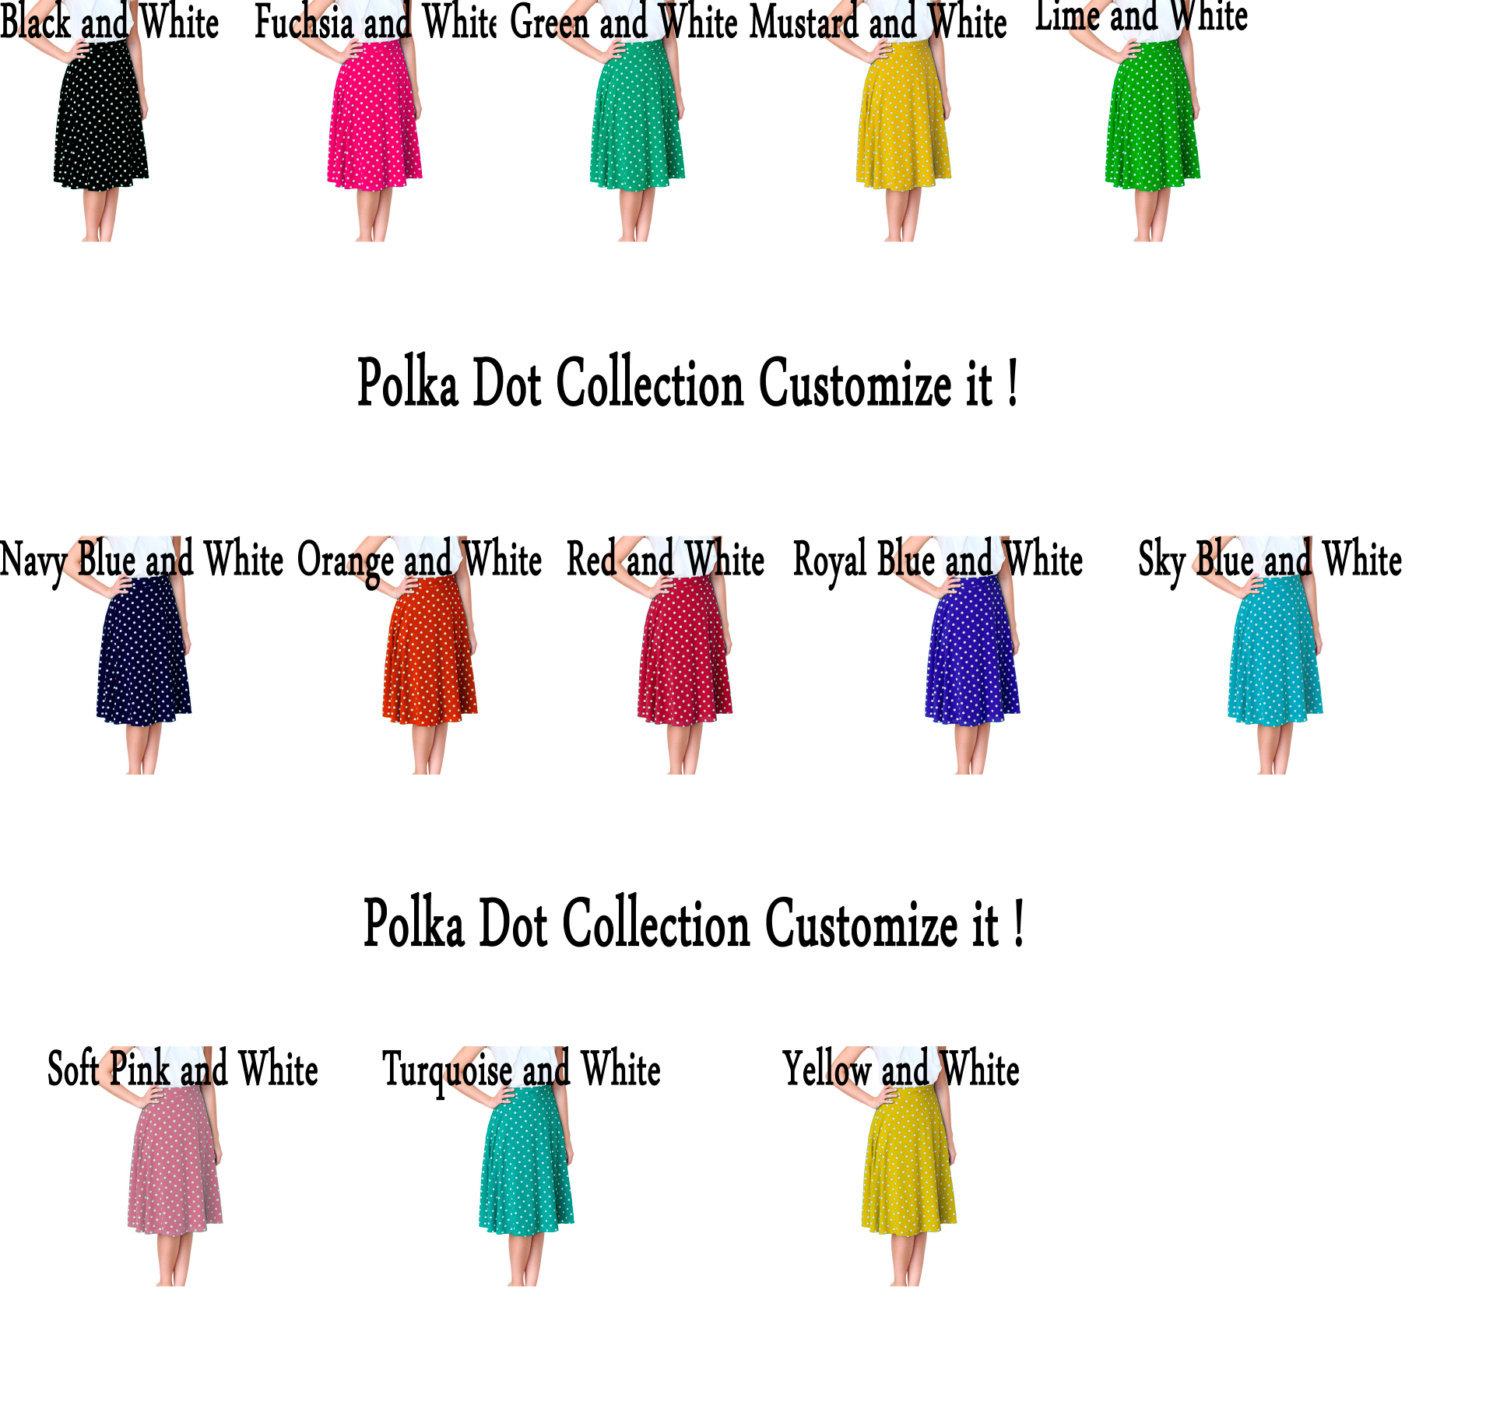 Women's Solid Color Flared Maxi A Line Below and Above Knee Polka Dots Skirts, used for sale  USA